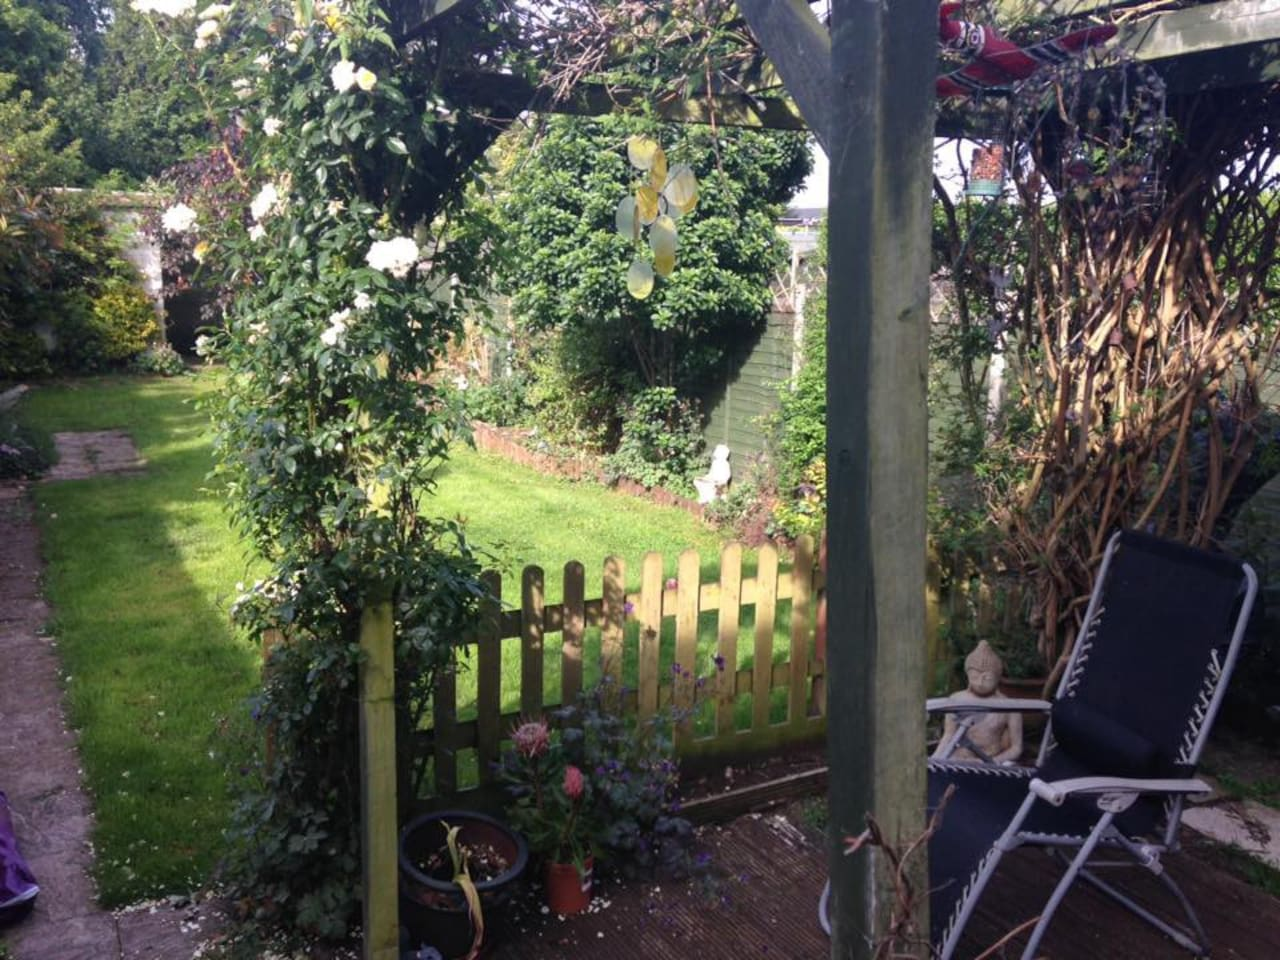 Double bedroom available over Royal Wedding weekend, relax in the garden after all the fuss dies down!